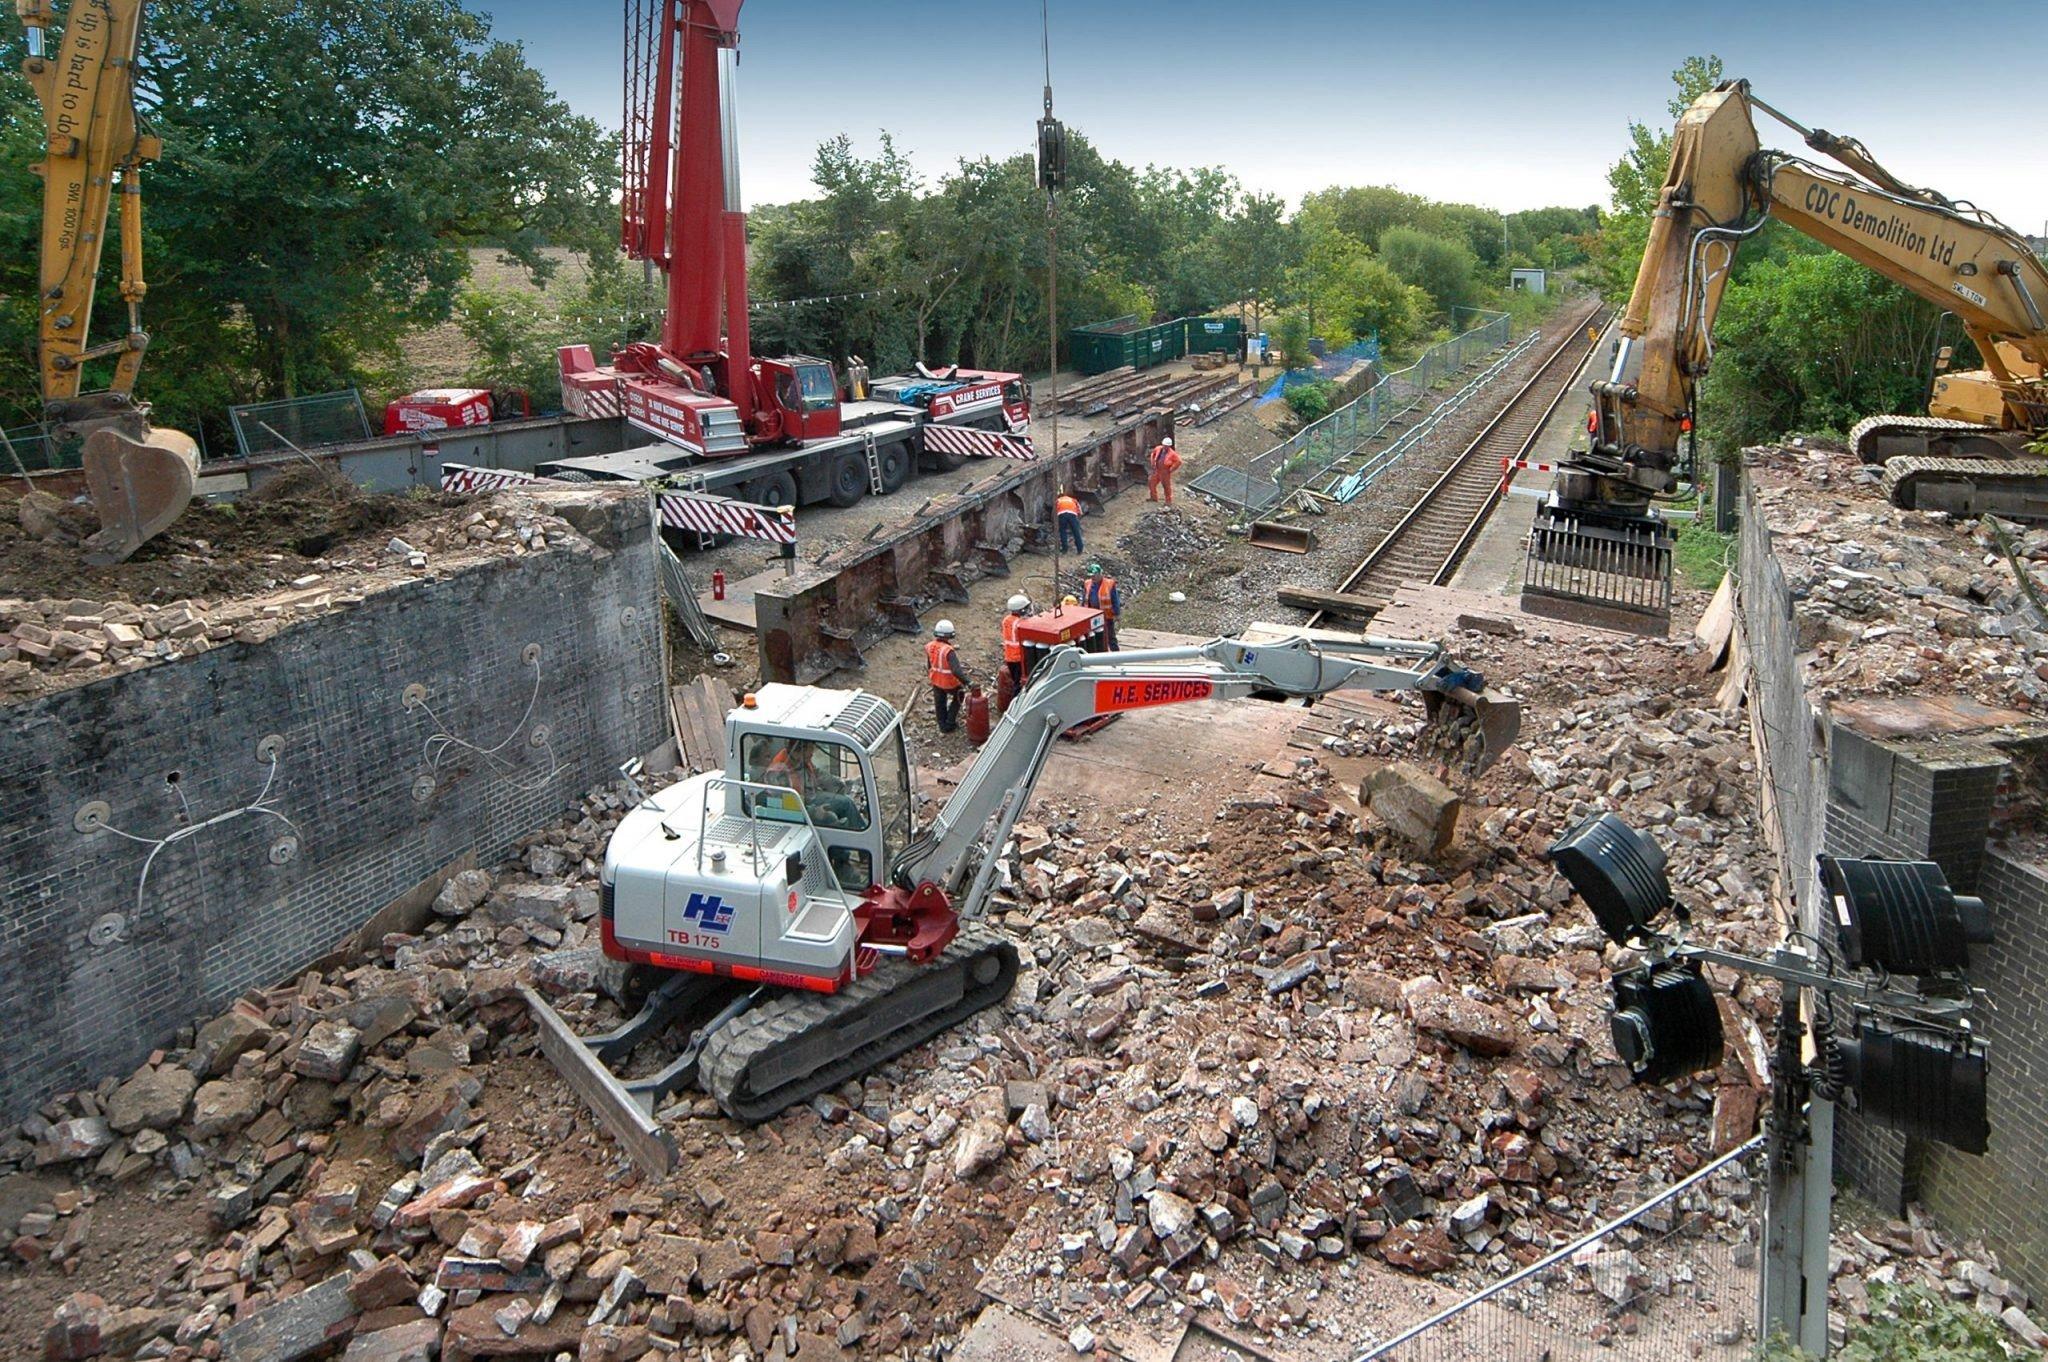 Wickham Market Bridge in Suffolk during replacement of the